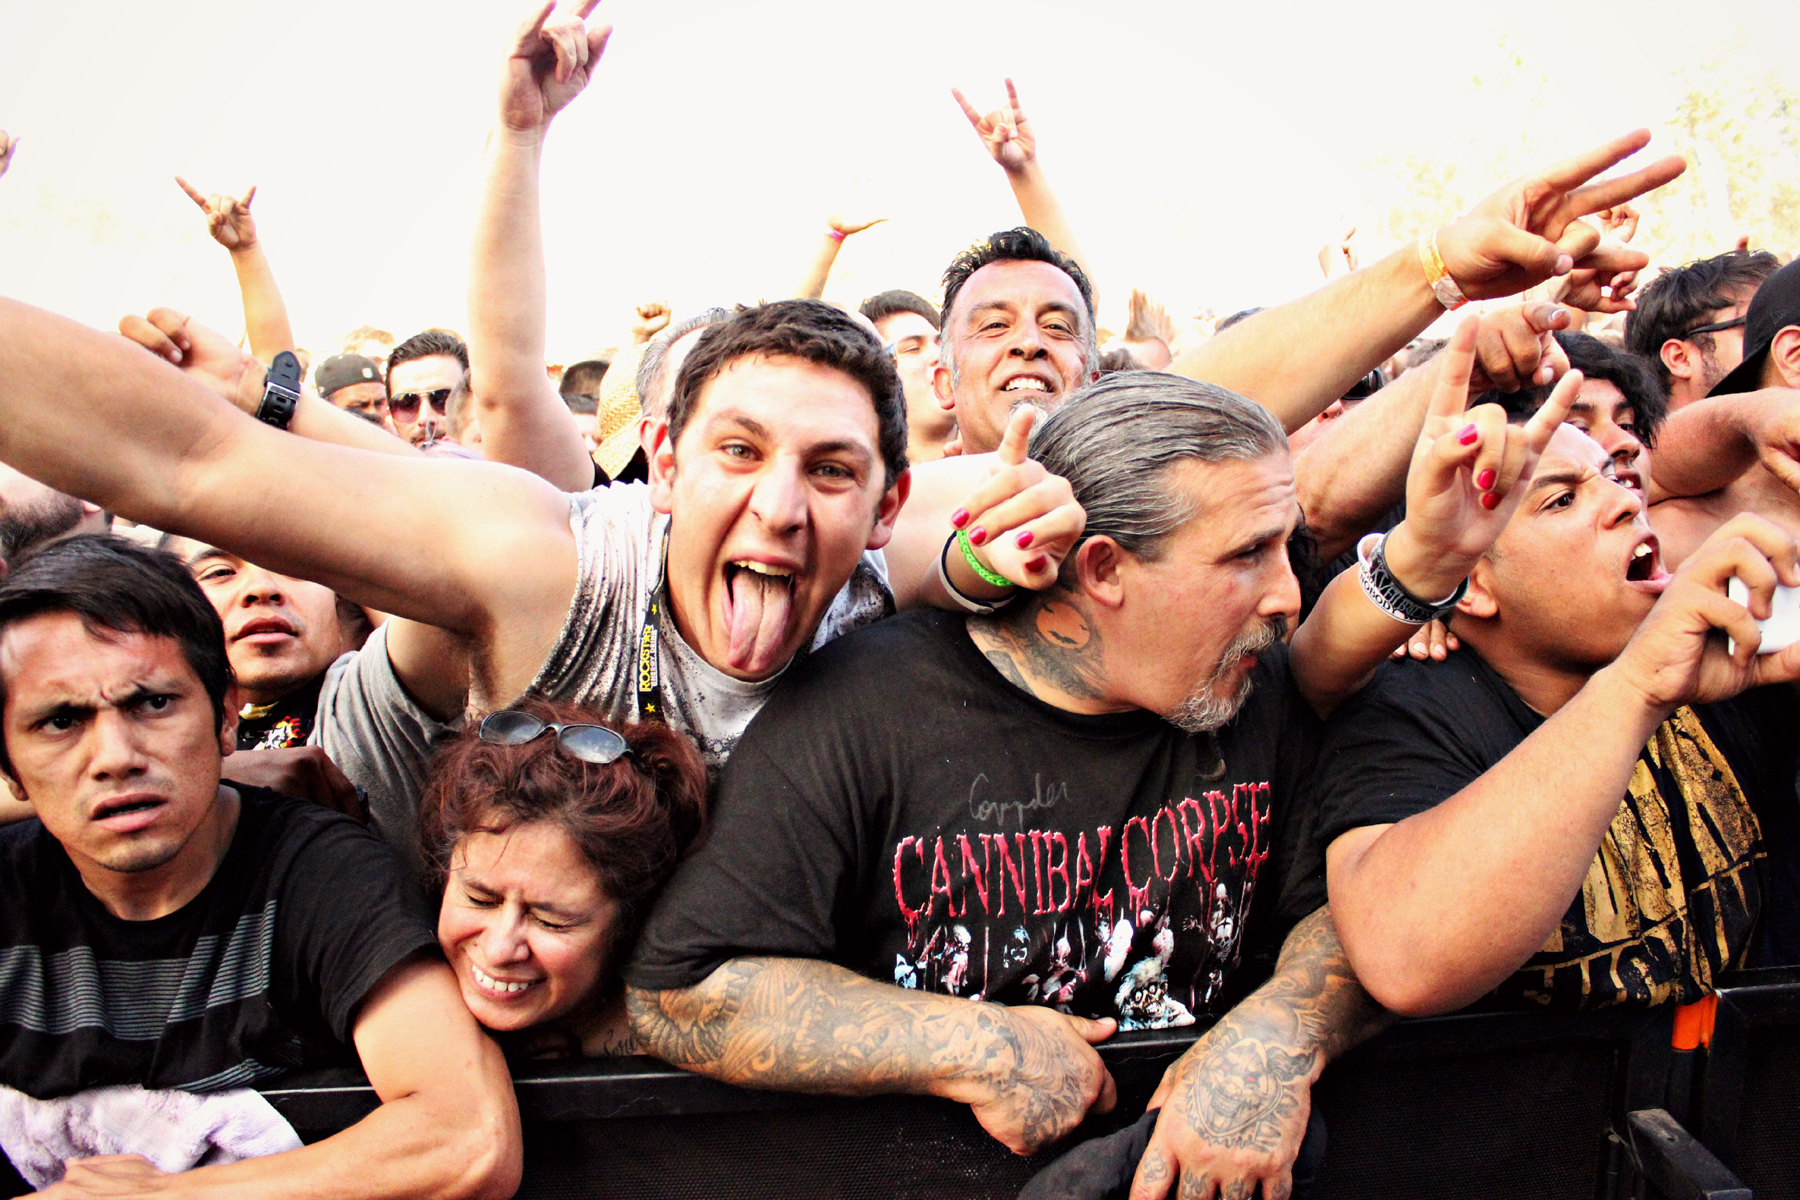 Fans during the Suicide Silence set